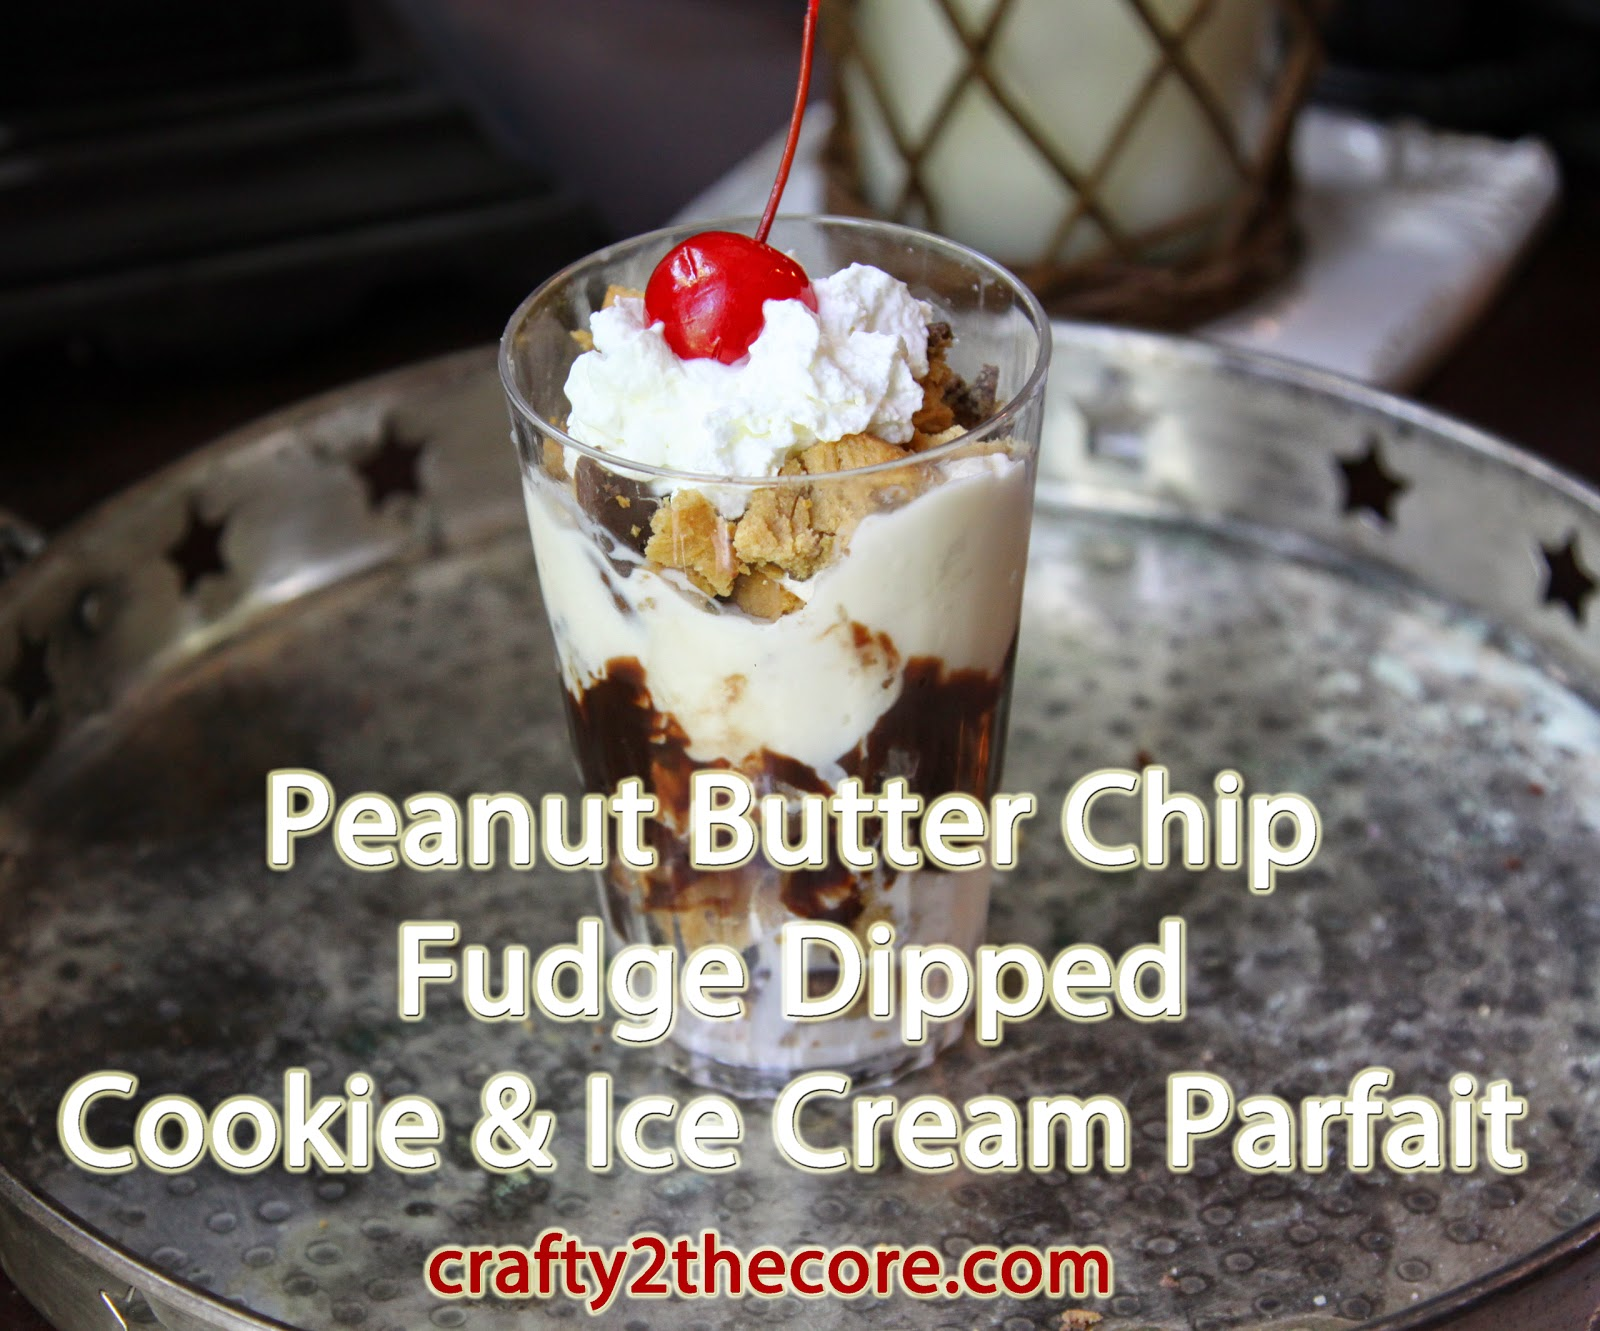 ~Peanut Butter Chip Fudge Dipped Cookie & Ice Cream Parfait~~Double Chocolate Fudge Dipped Cookie & Ice Cream Parfaits~~Double Chocolate Fudge Dipped Cookie & Ice Cream Parfaits~ 2 other cookie parfait flavors too!